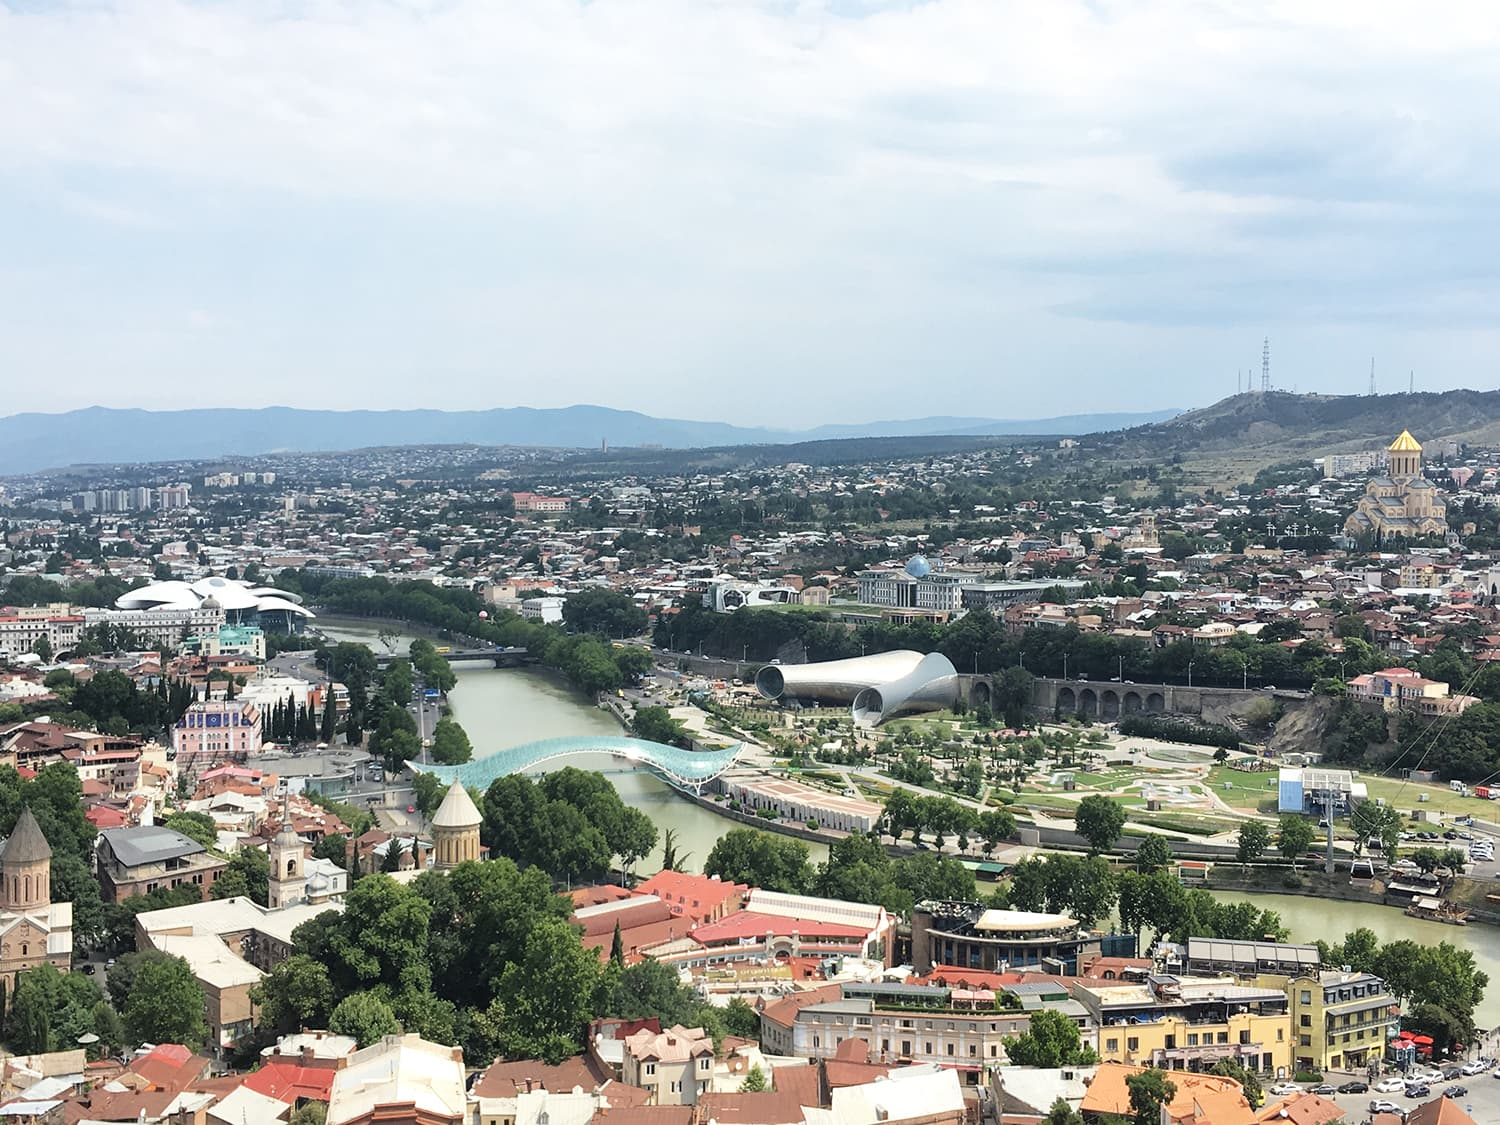 A view from the Narikala Fortress.